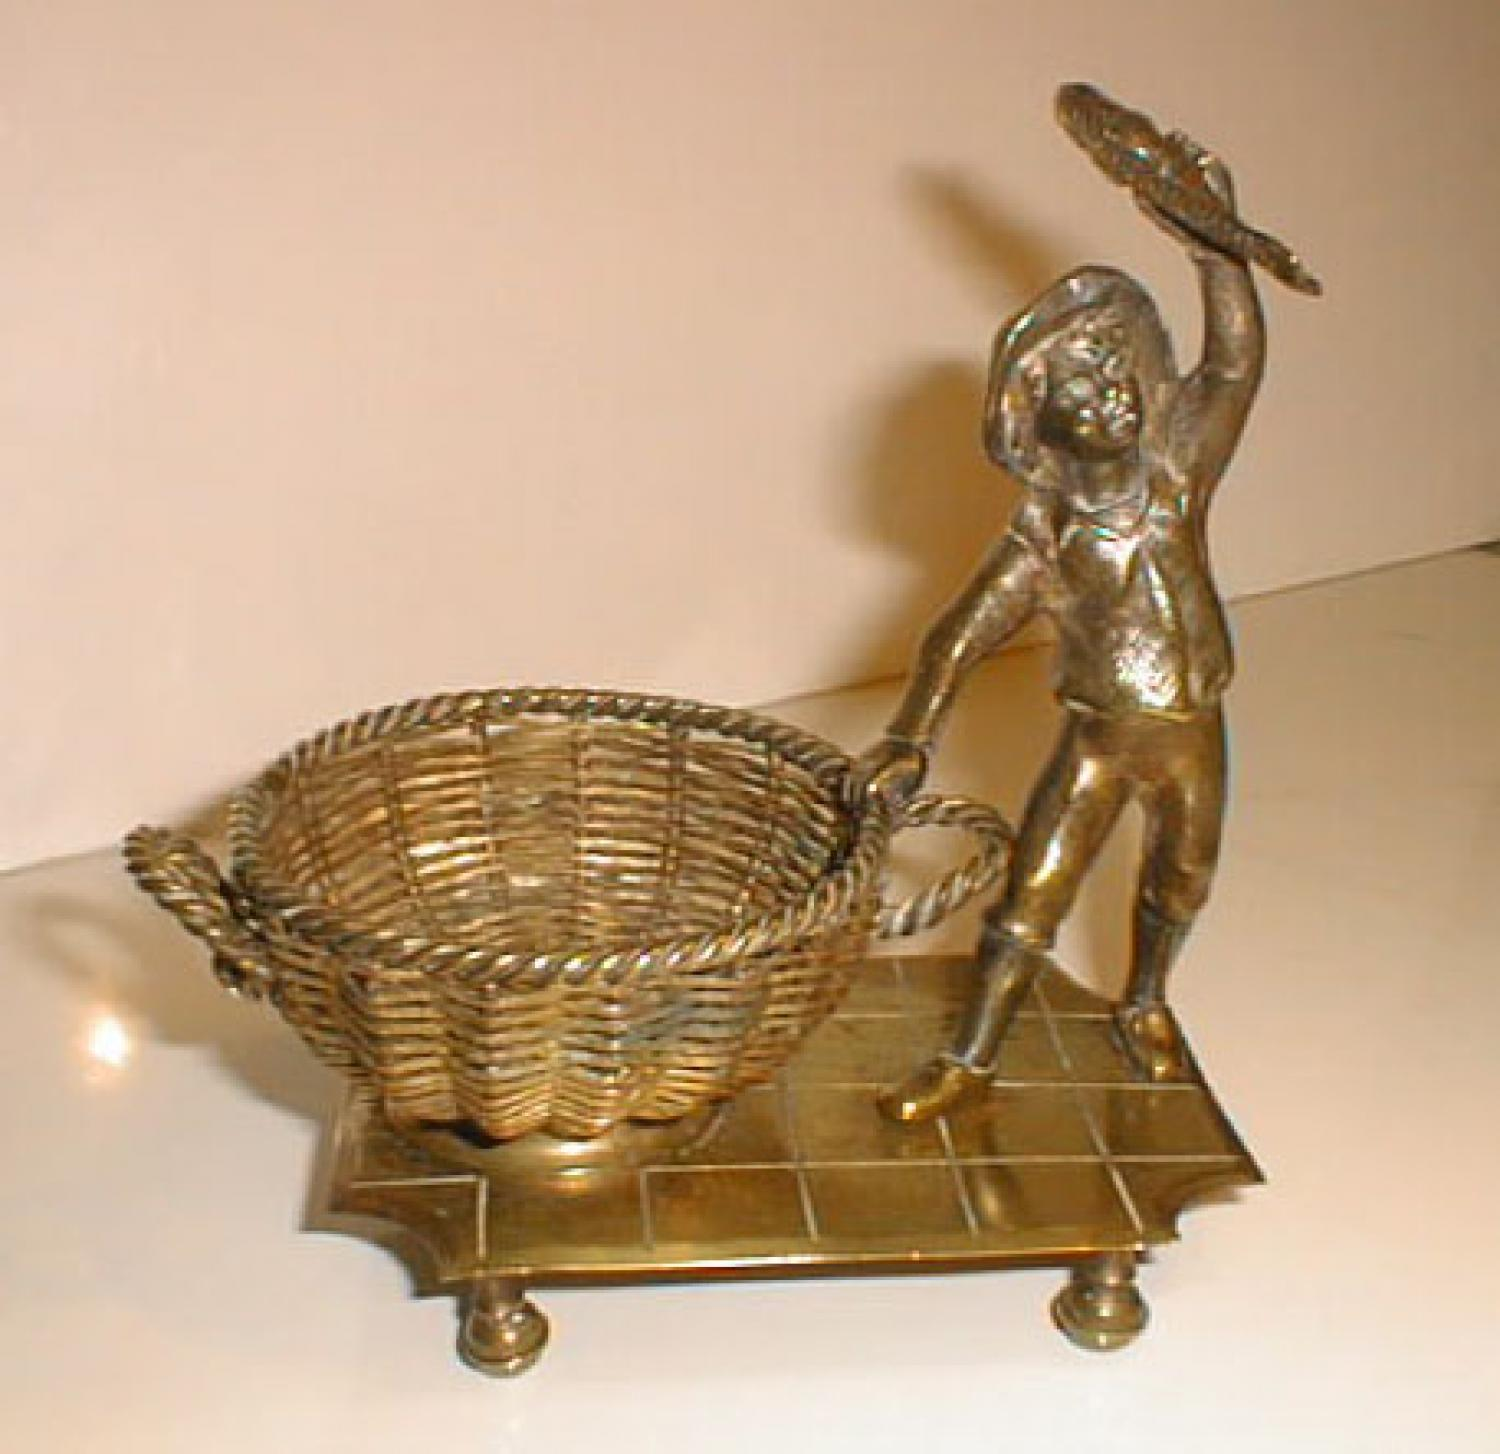 Brass Figure of a Fisherman fish and basket